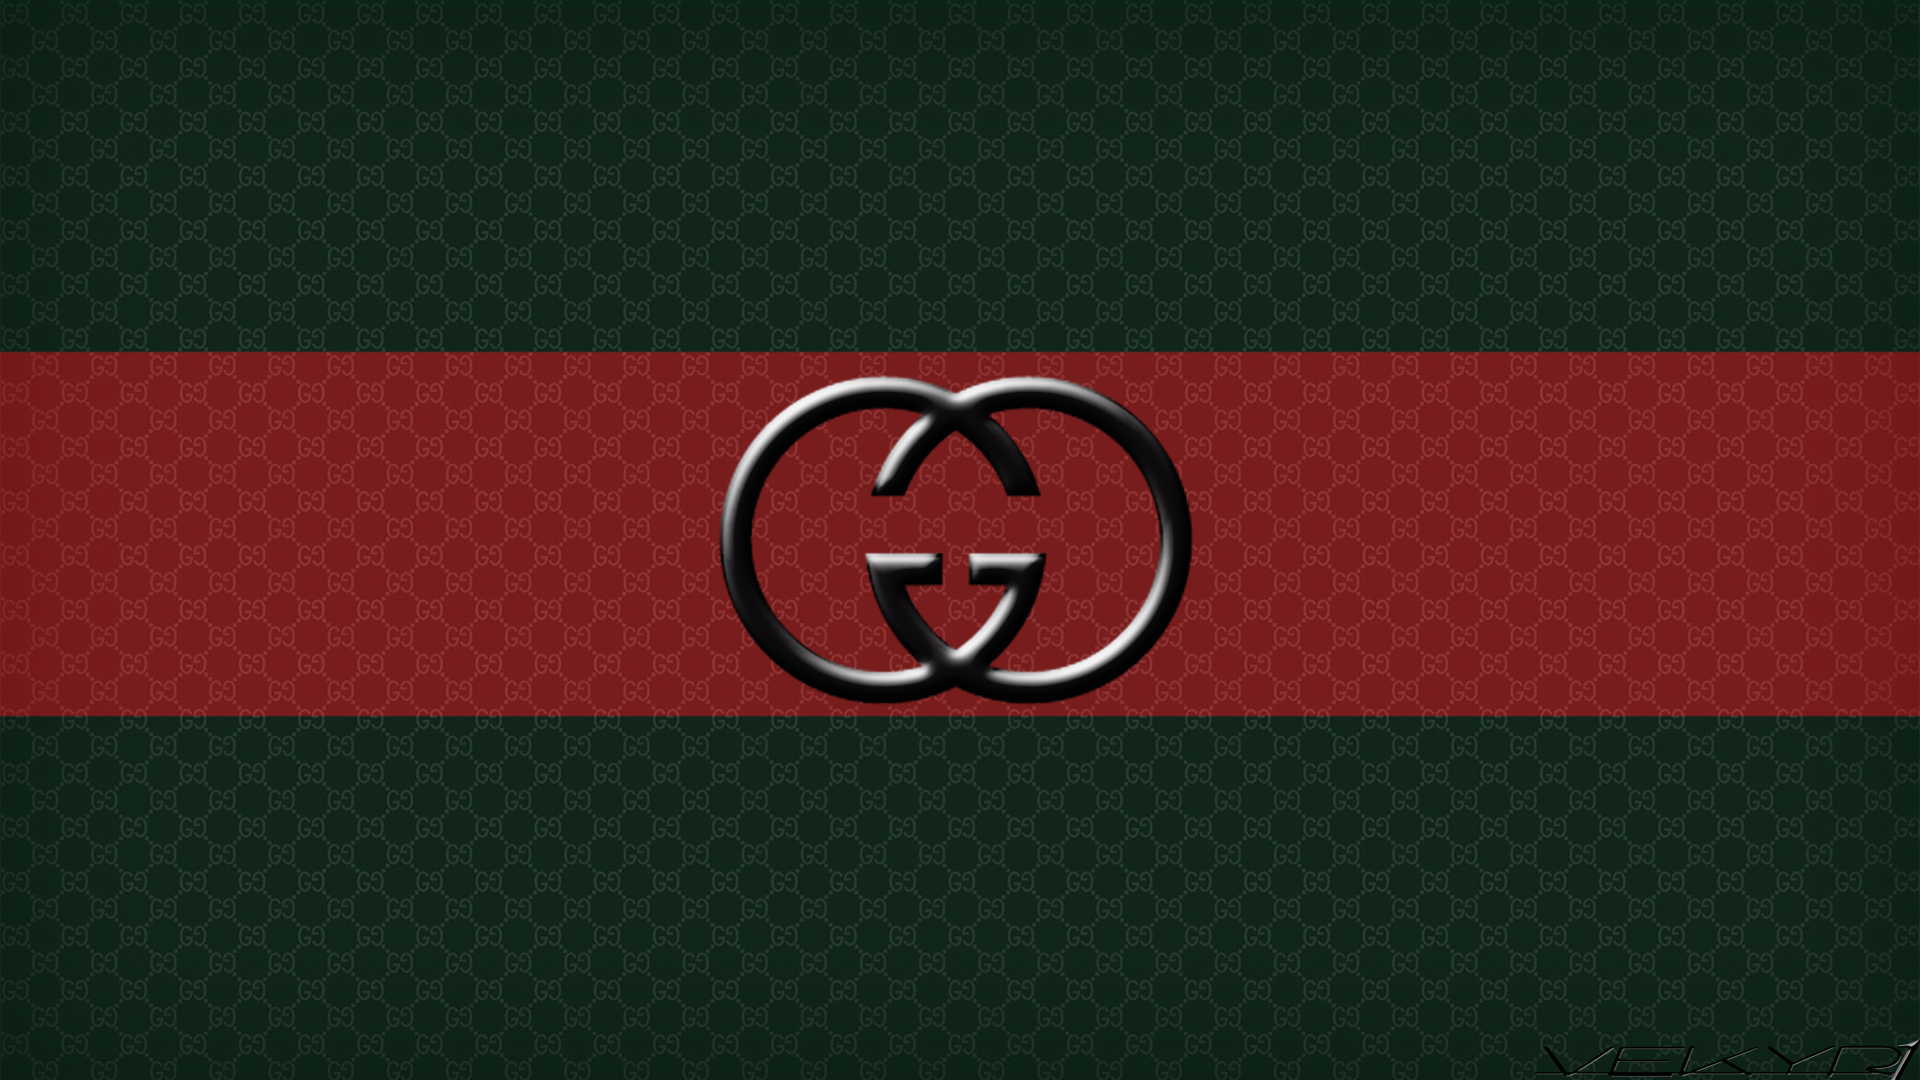 Gucci Wallpapers for Phones and Tablets 1920x1080